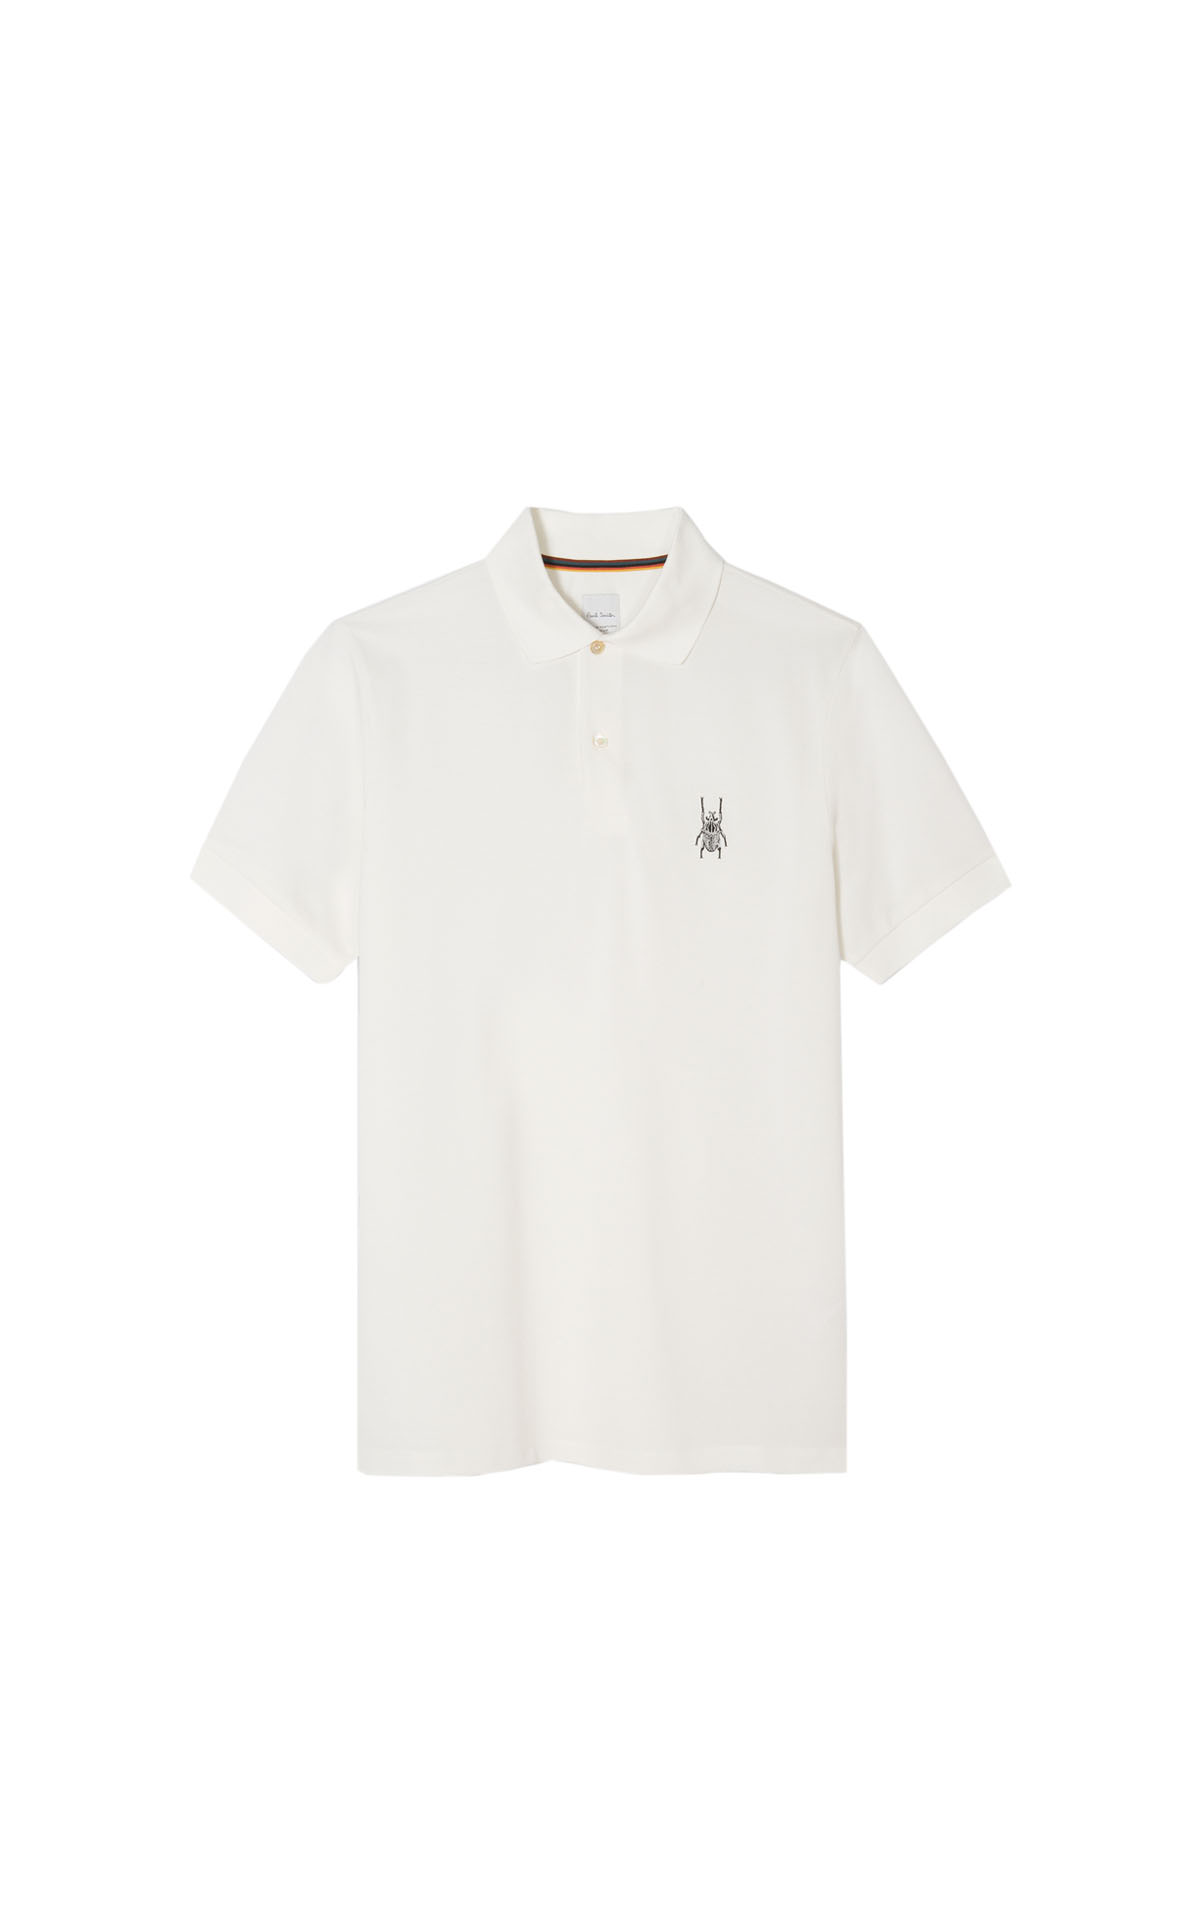 Paul Smith men's white 'goliath beetle' polo shirt at The Bicester Village Shopping Collection